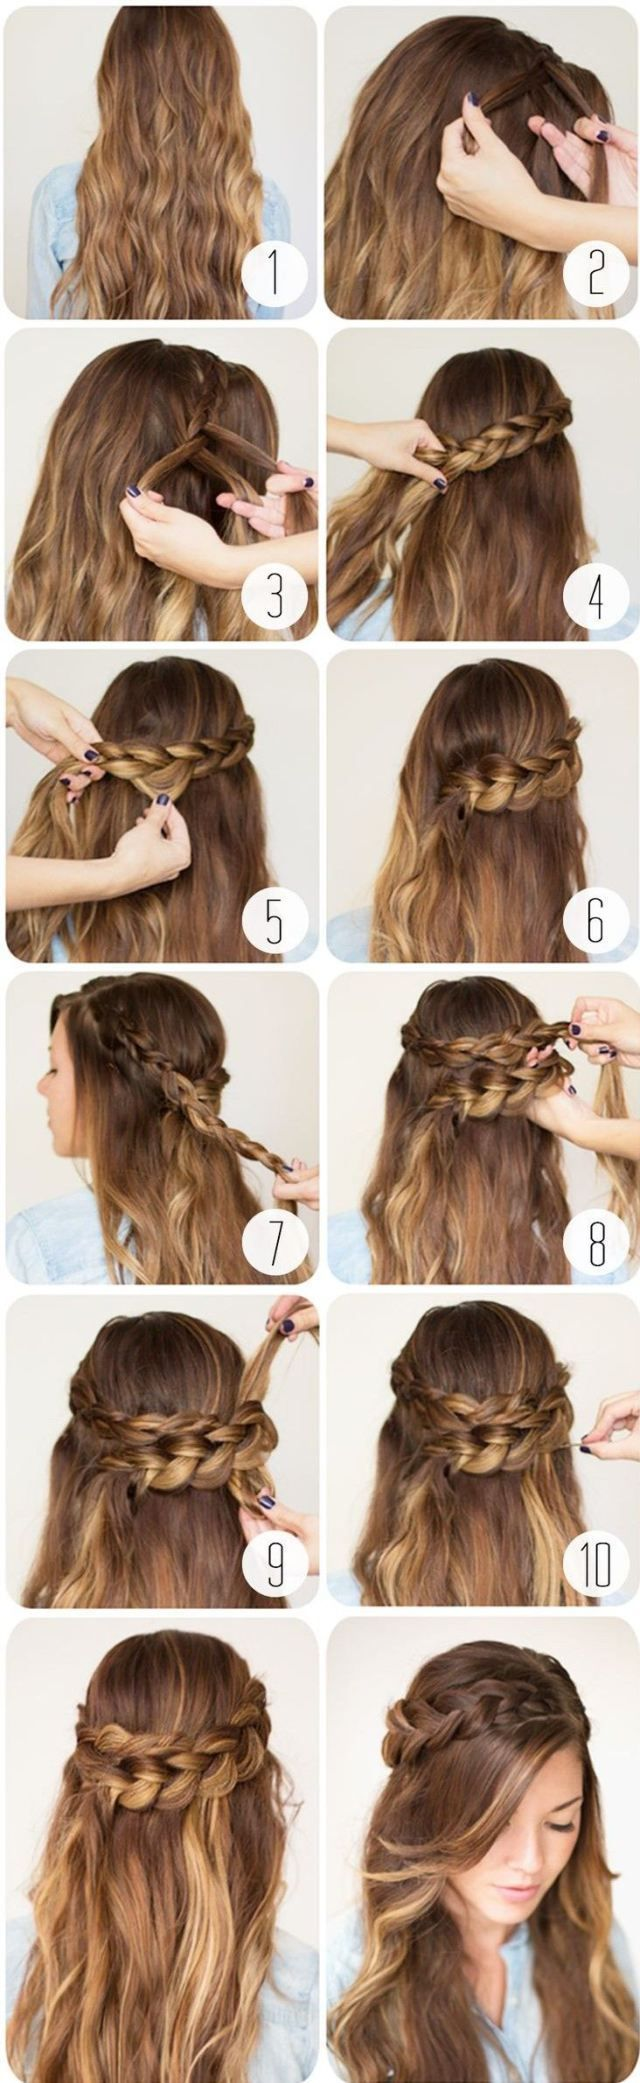 Awesome step by step braided hair tutorials hairstyles pinterest